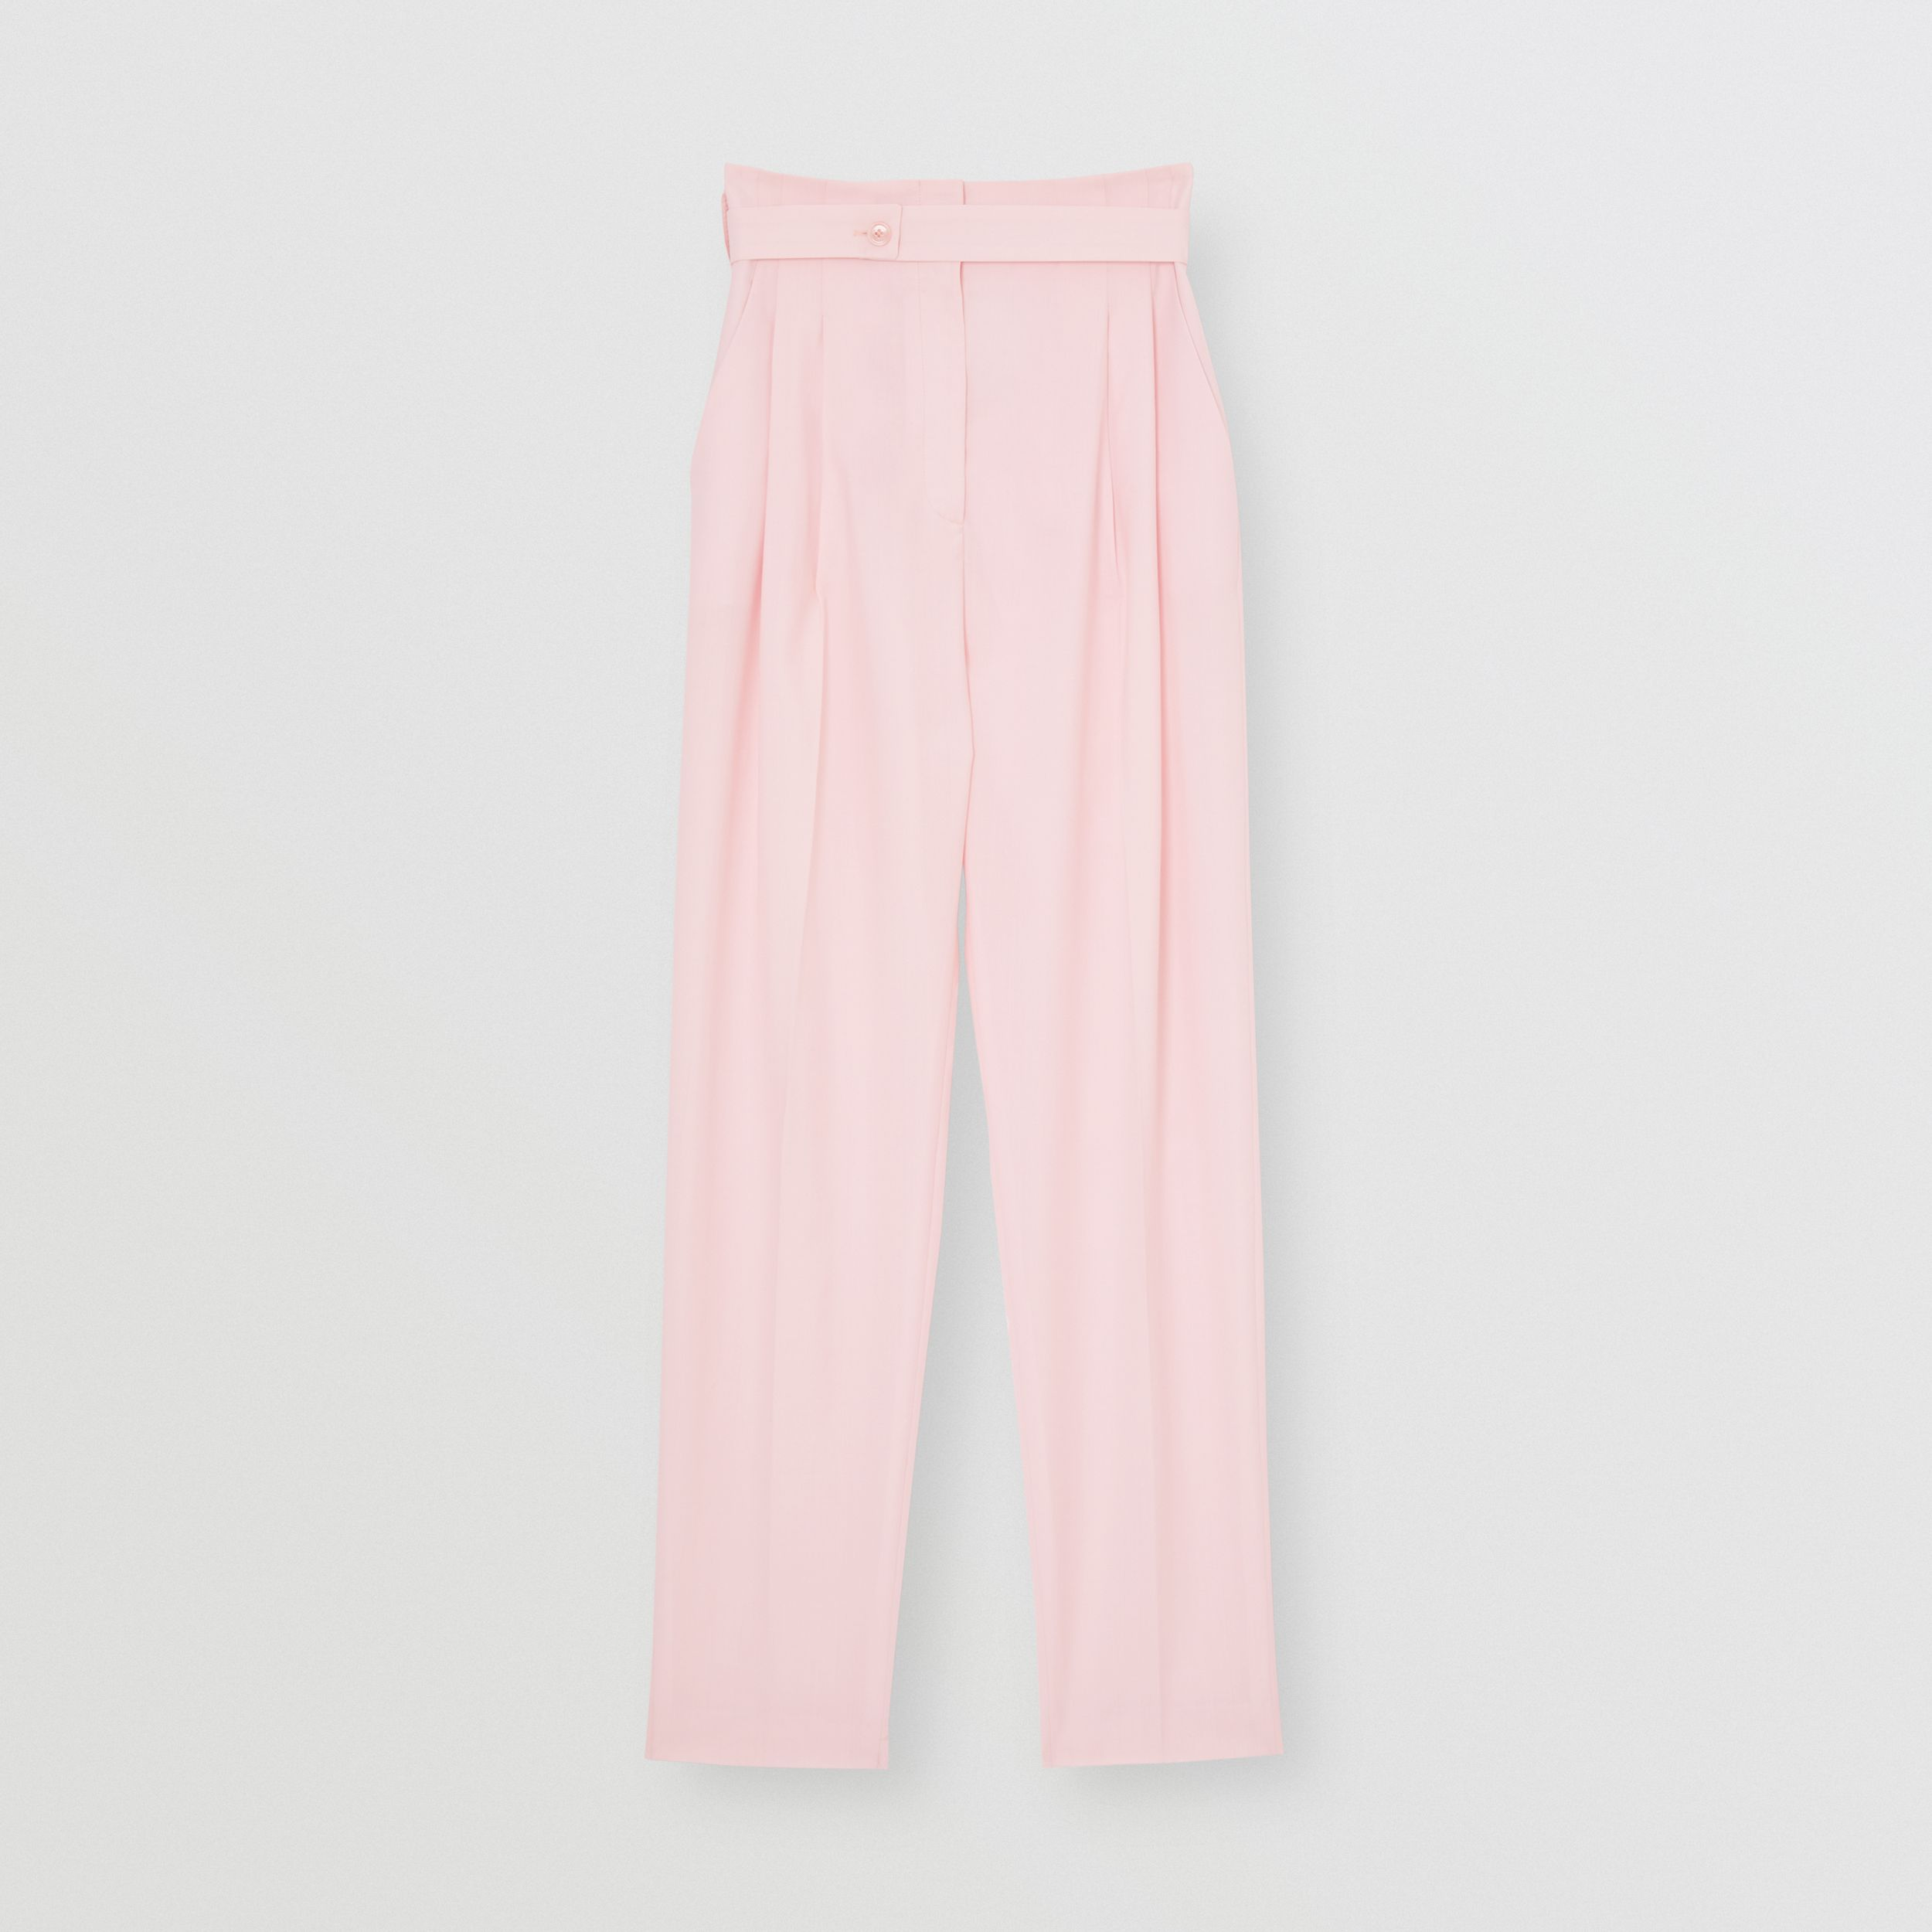 Cut-out Detail Wool Canvas Tailored Trousers in Pastel Pink - Women | Burberry - 1